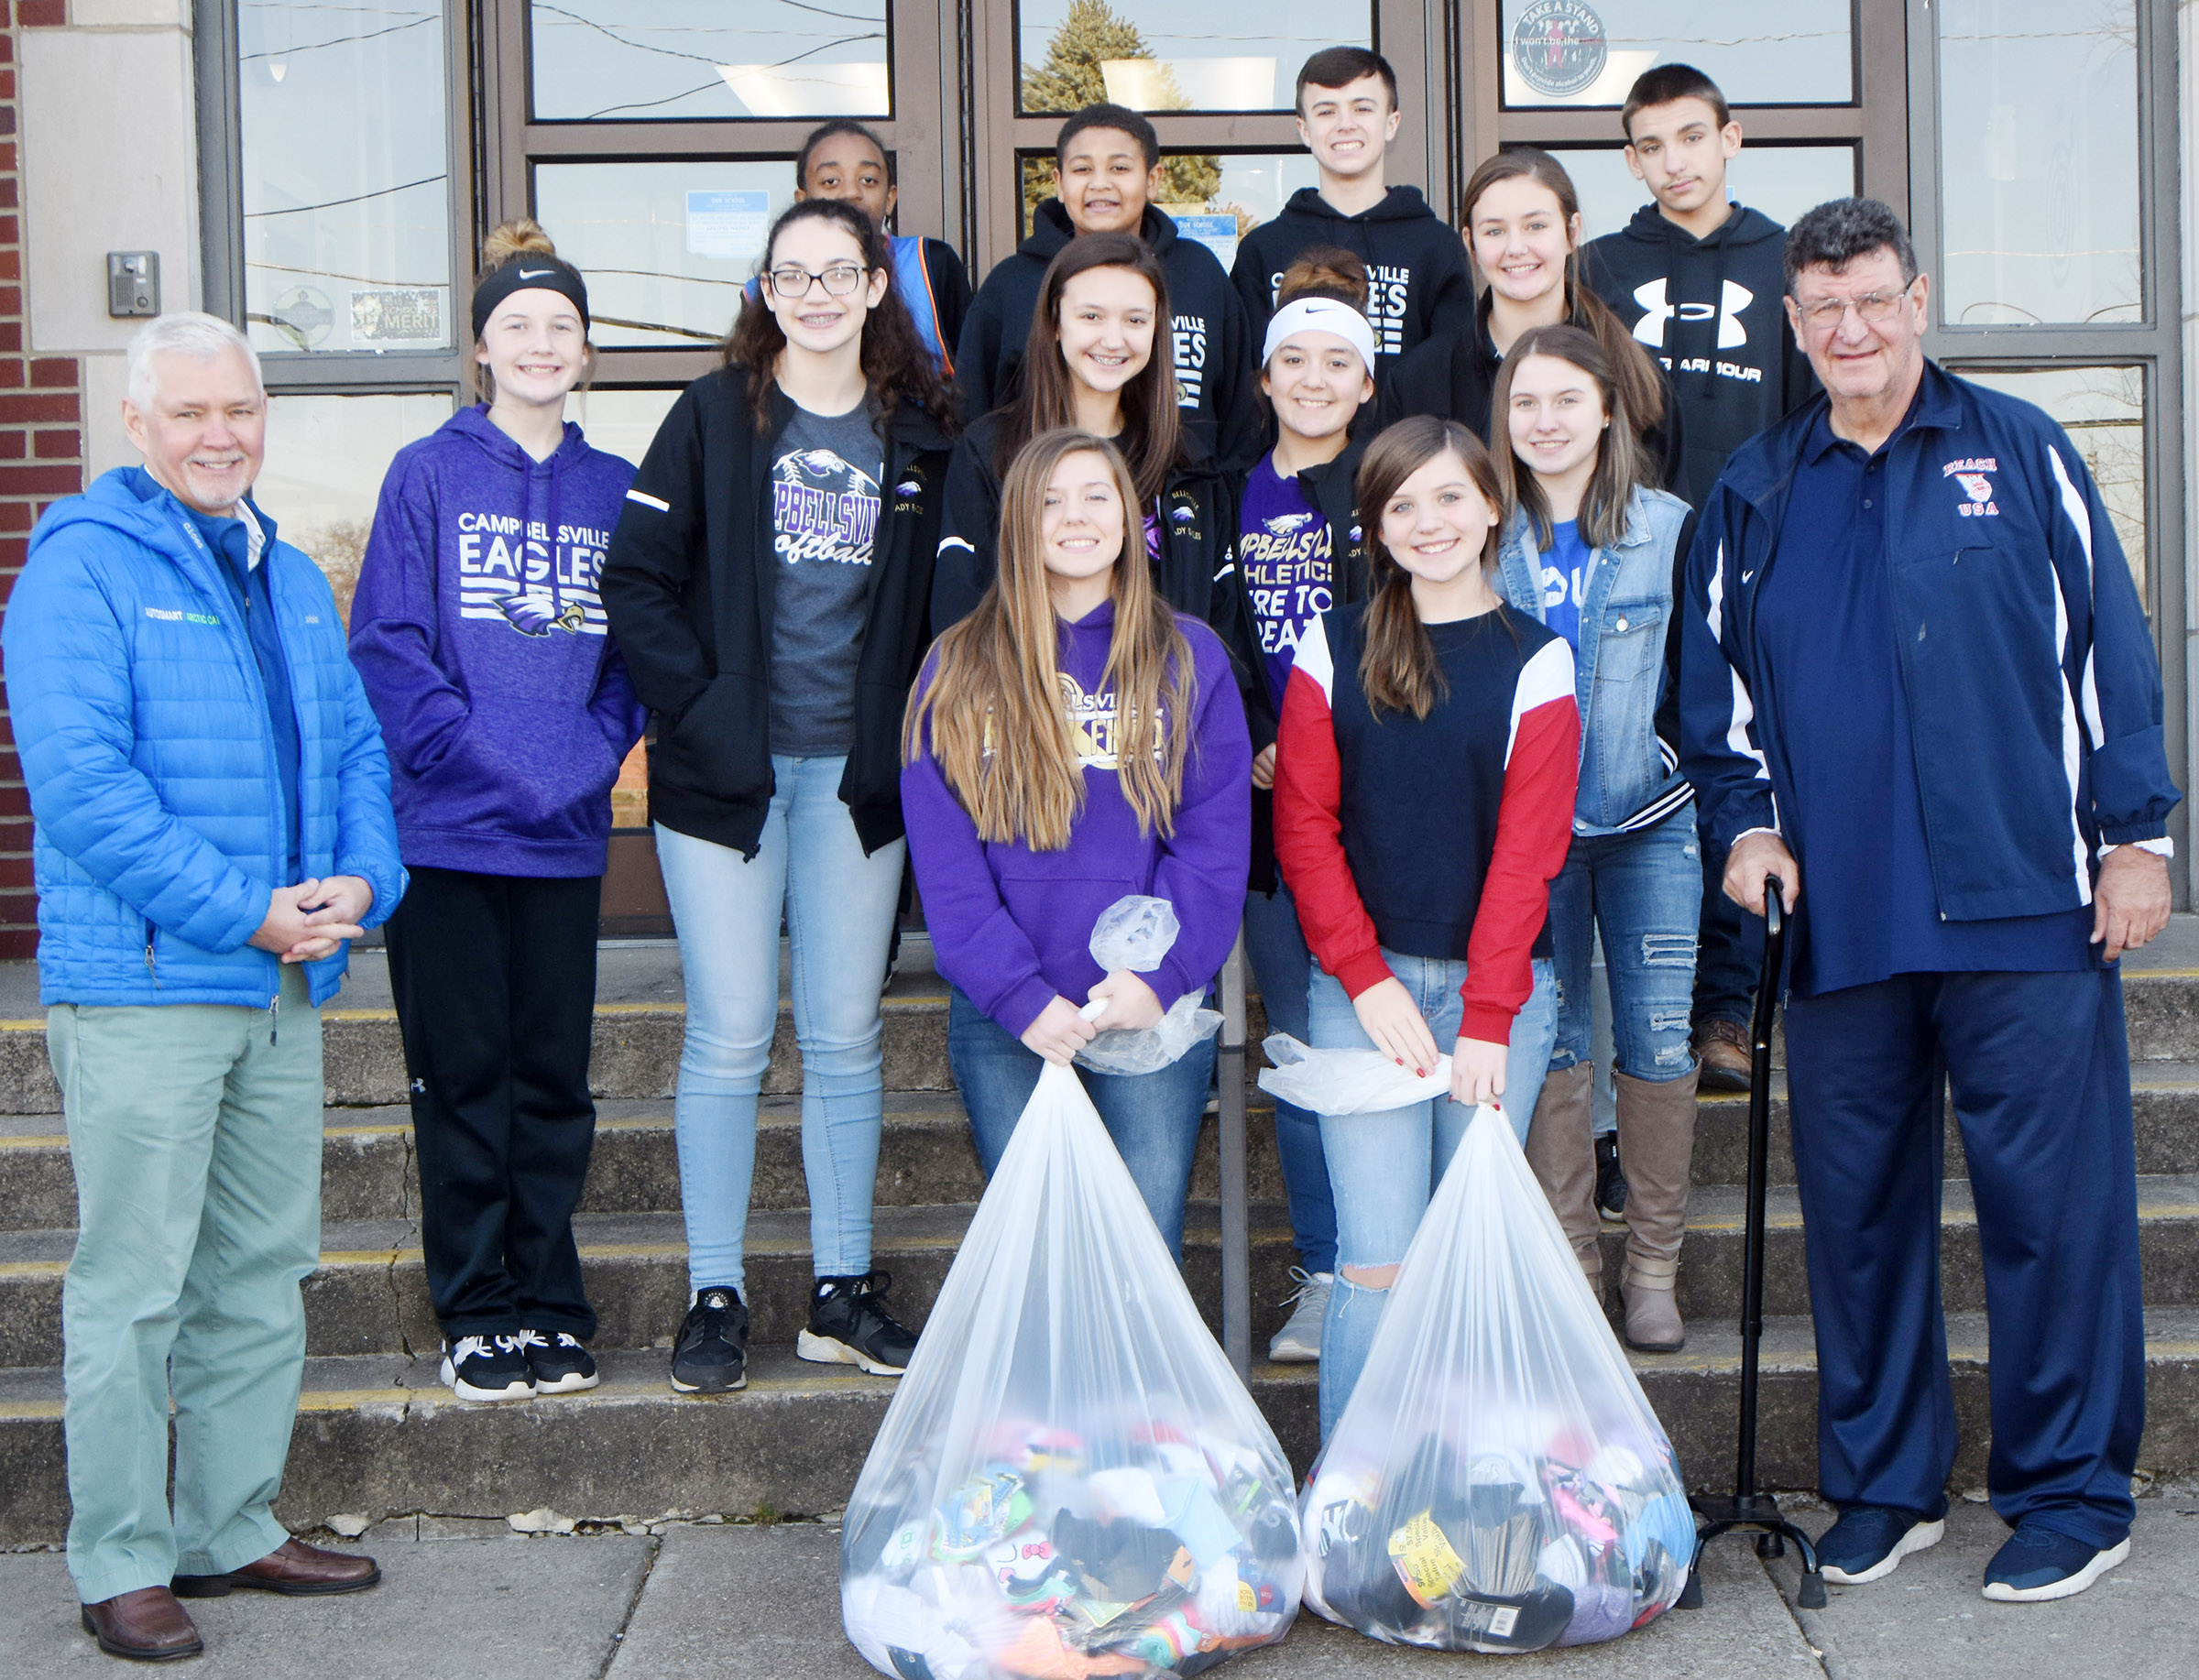 CMS Junior Beta Club members present the socks they recently collected to Stan Curry, at left, and Robby Speer, at right, of the Sports Reach organization. The socks were donated to Owsley County residents. Pictured with Curry and Speer are, from left, front, eighth-graders Alysa Howard and Mikaela Scharbrough. Second row, eighth-graders Dakota Slone, Mary Russell, Bri Hayes, Bri Davis and Leigh Hicks. Back, eighth-graders Zamar Owens, Ronin Smith, Chase Hord, Haylee Allen and Nate Mitchell.